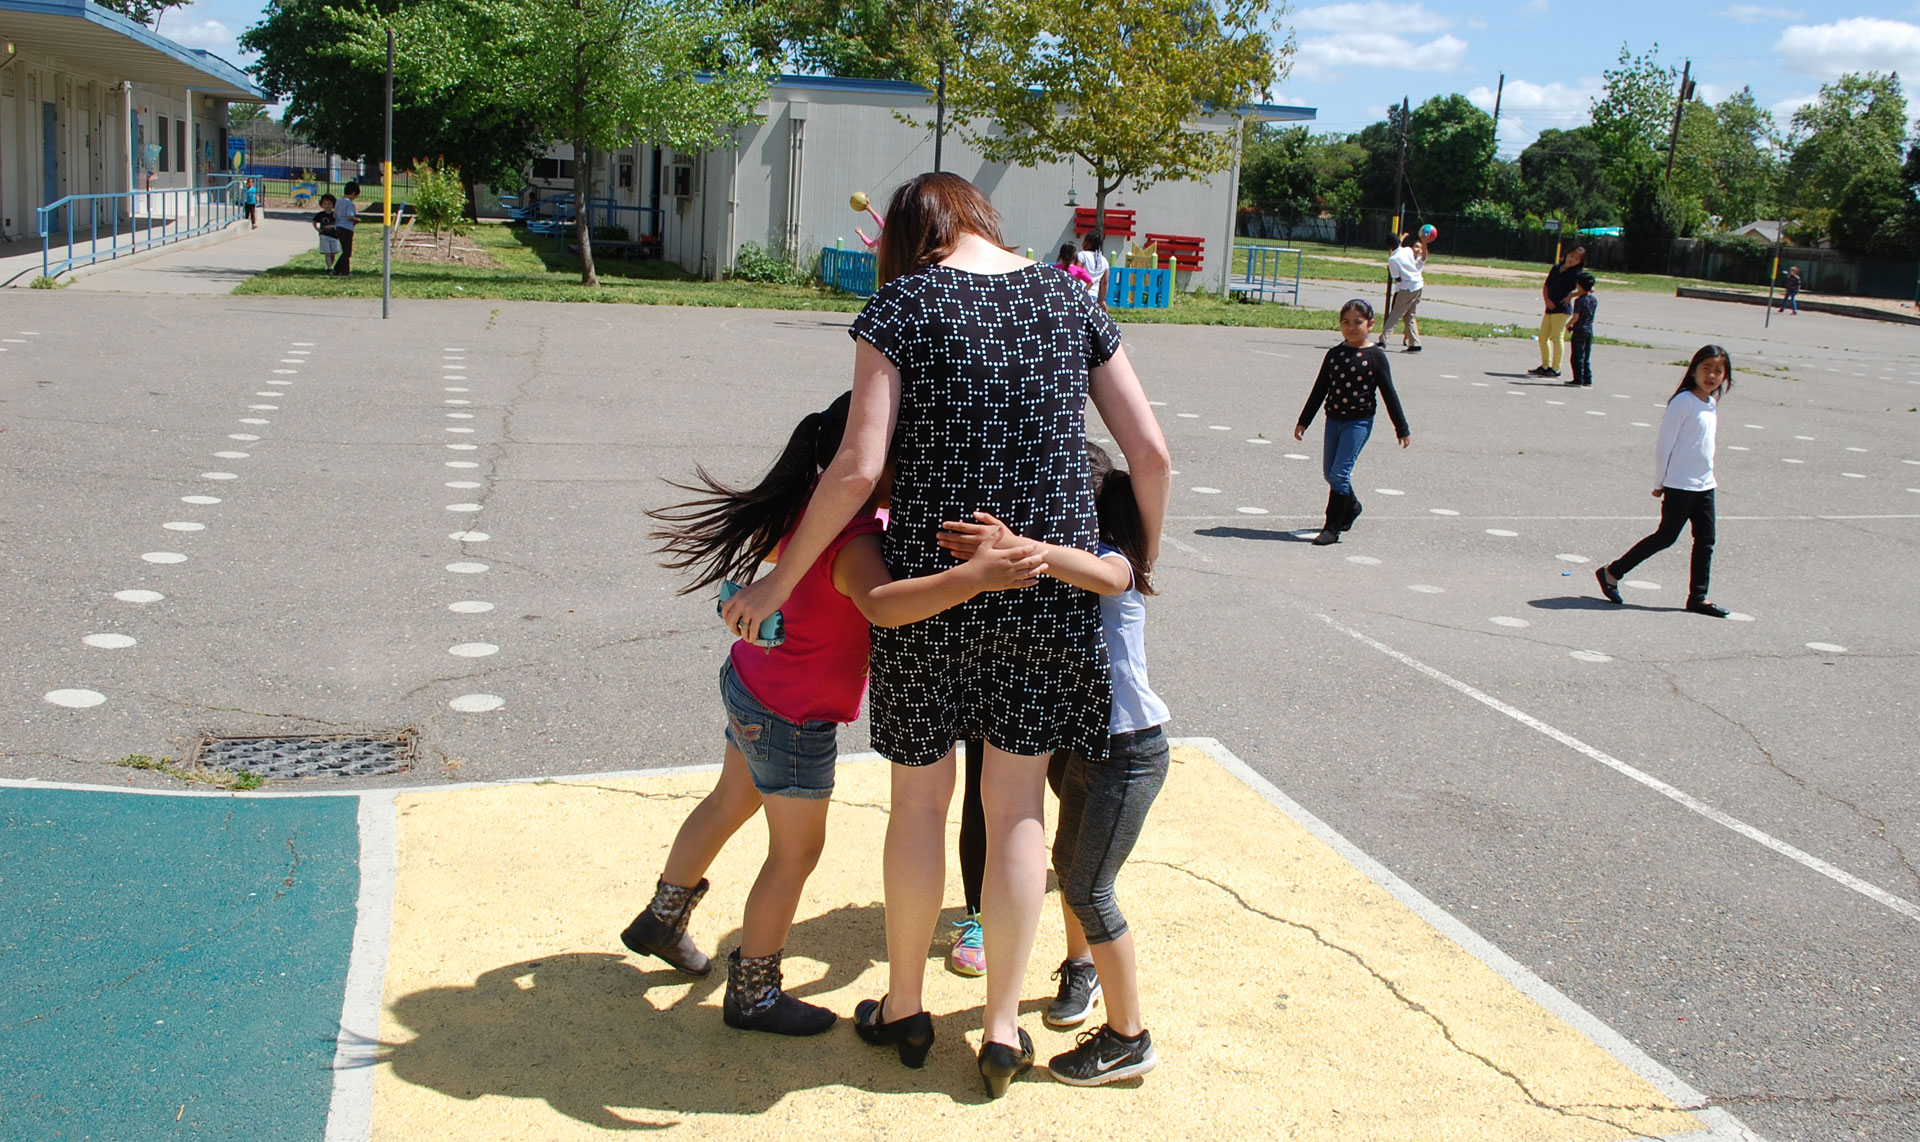 Bethany Coburn, a social worker and coordinator of the Student Support Center at Oak Ridge Elementary, receives a group hug from students on campus.